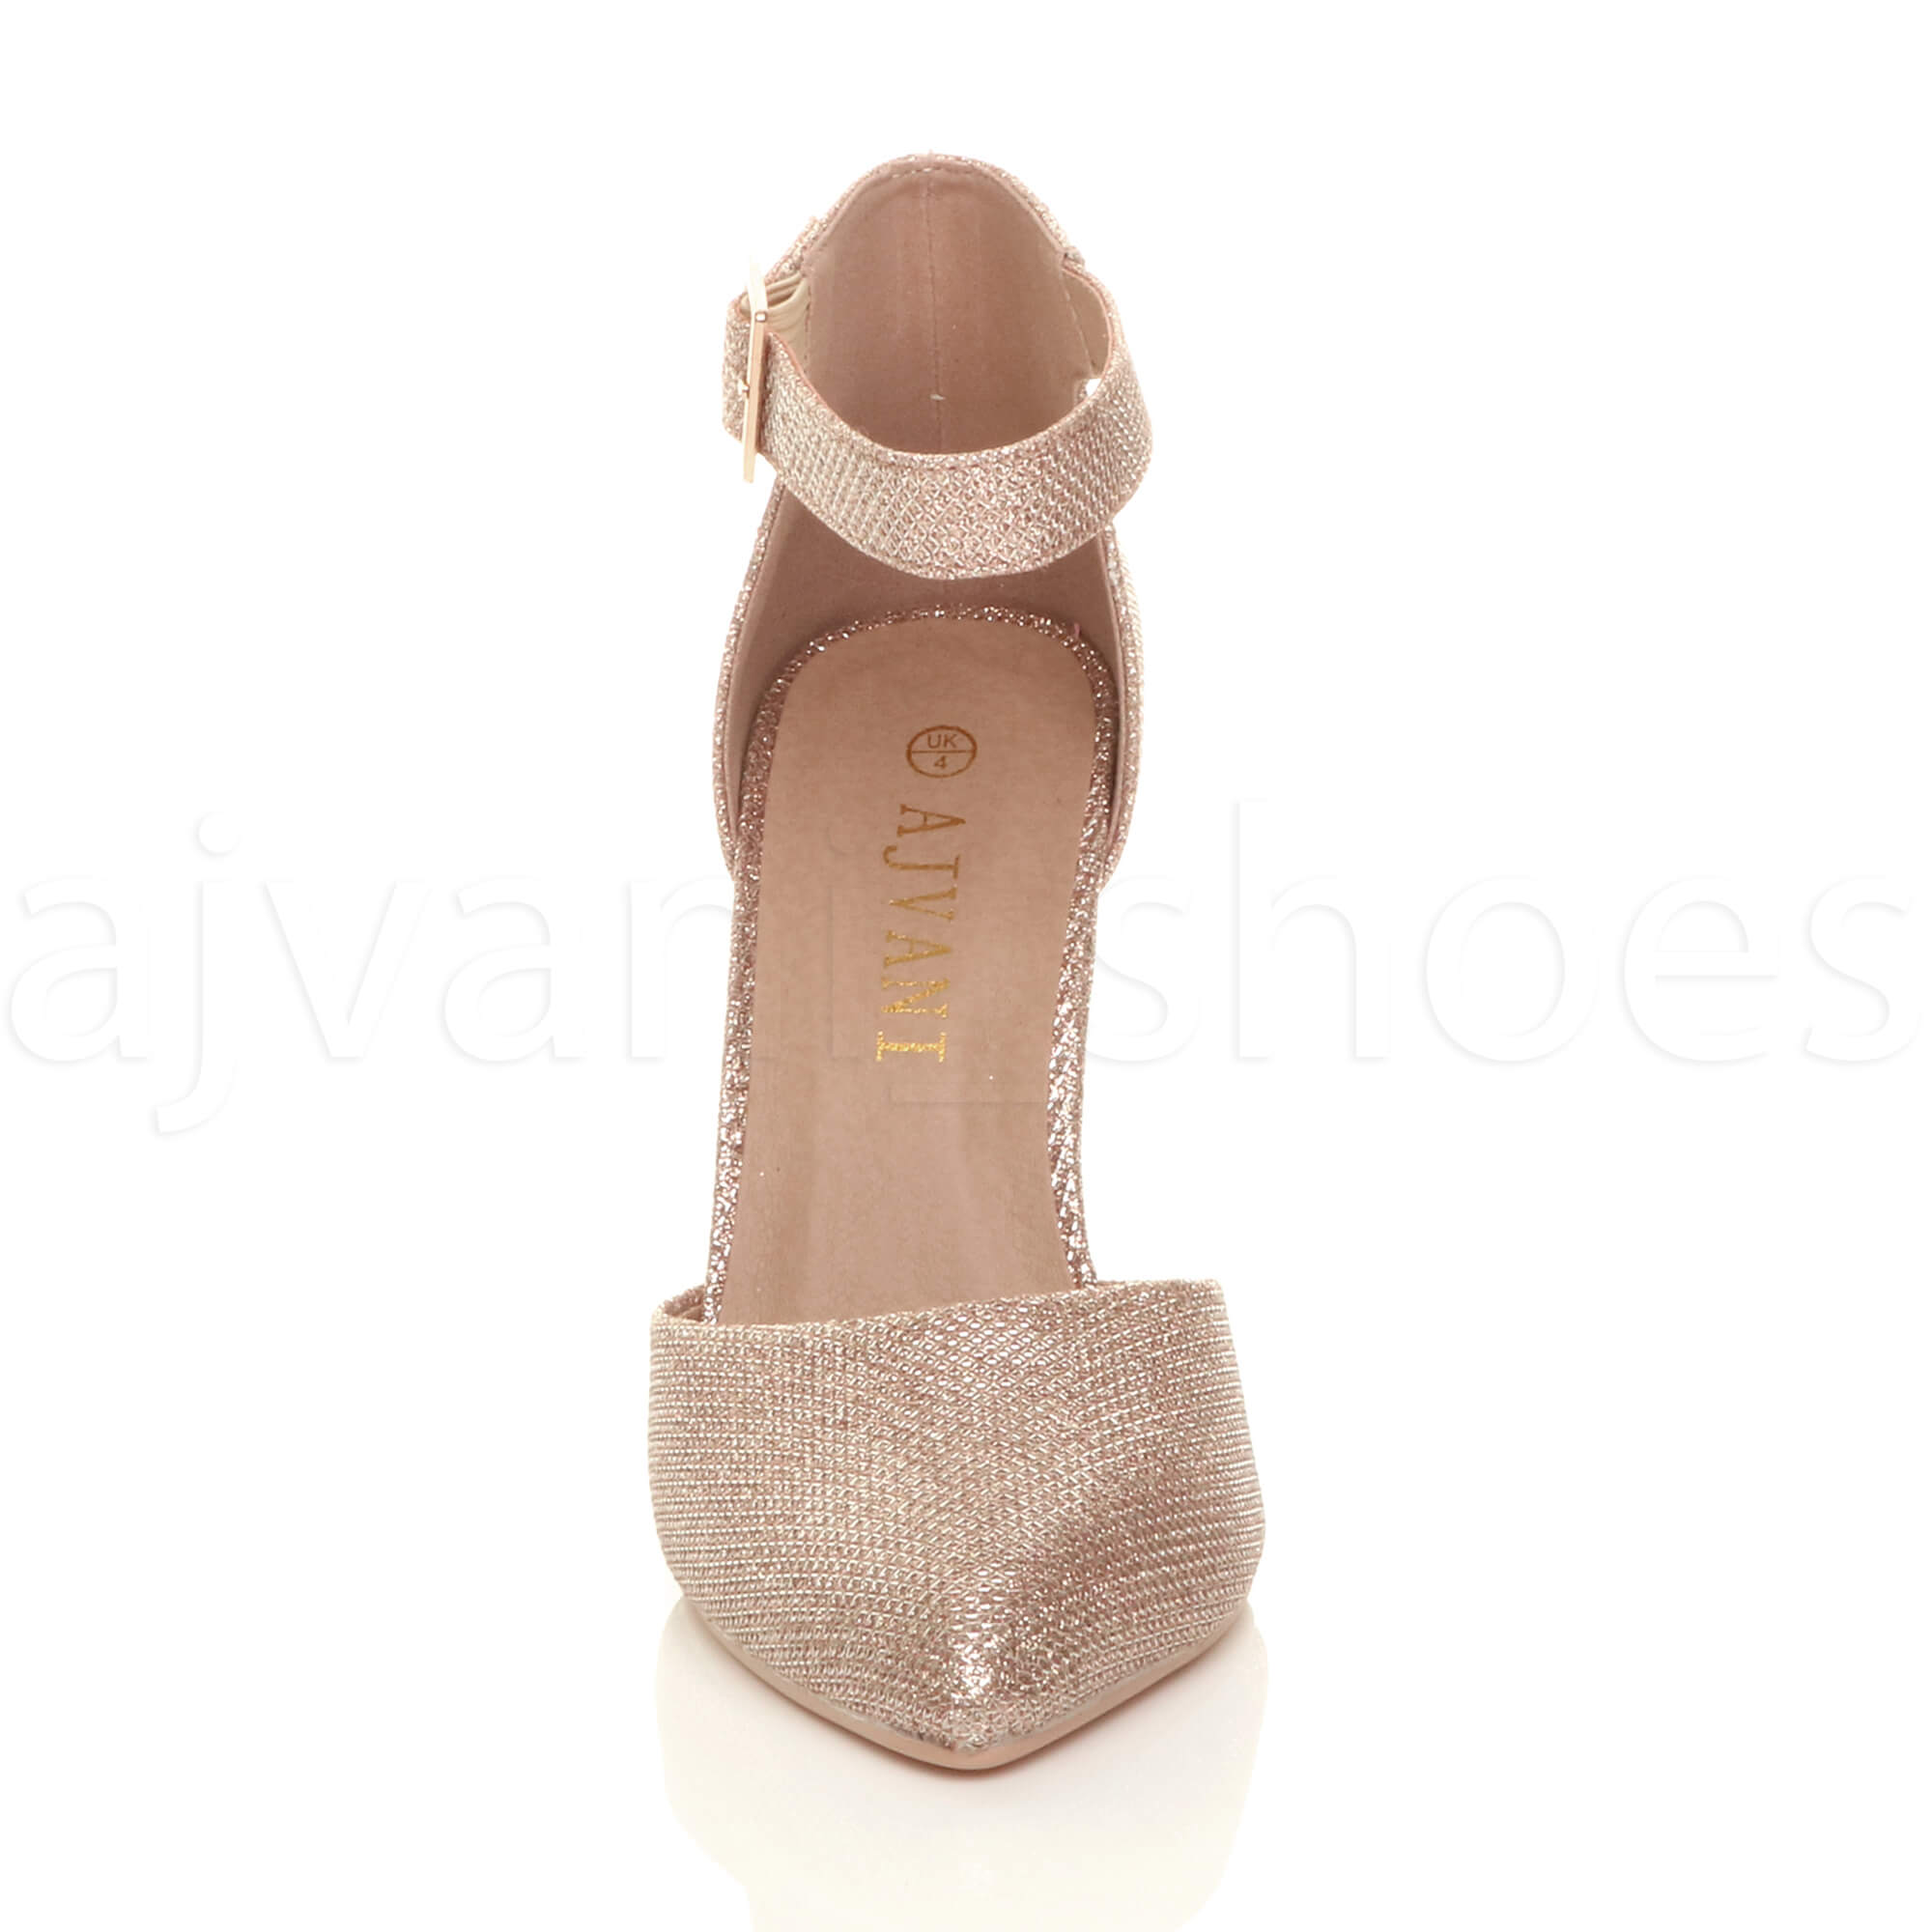 WOMENS-LADIES-HIGH-BLOCK-HEEL-ANKLE-STRAP-BUCKLE-POINTED-COURT-SHOES-SIZE thumbnail 153